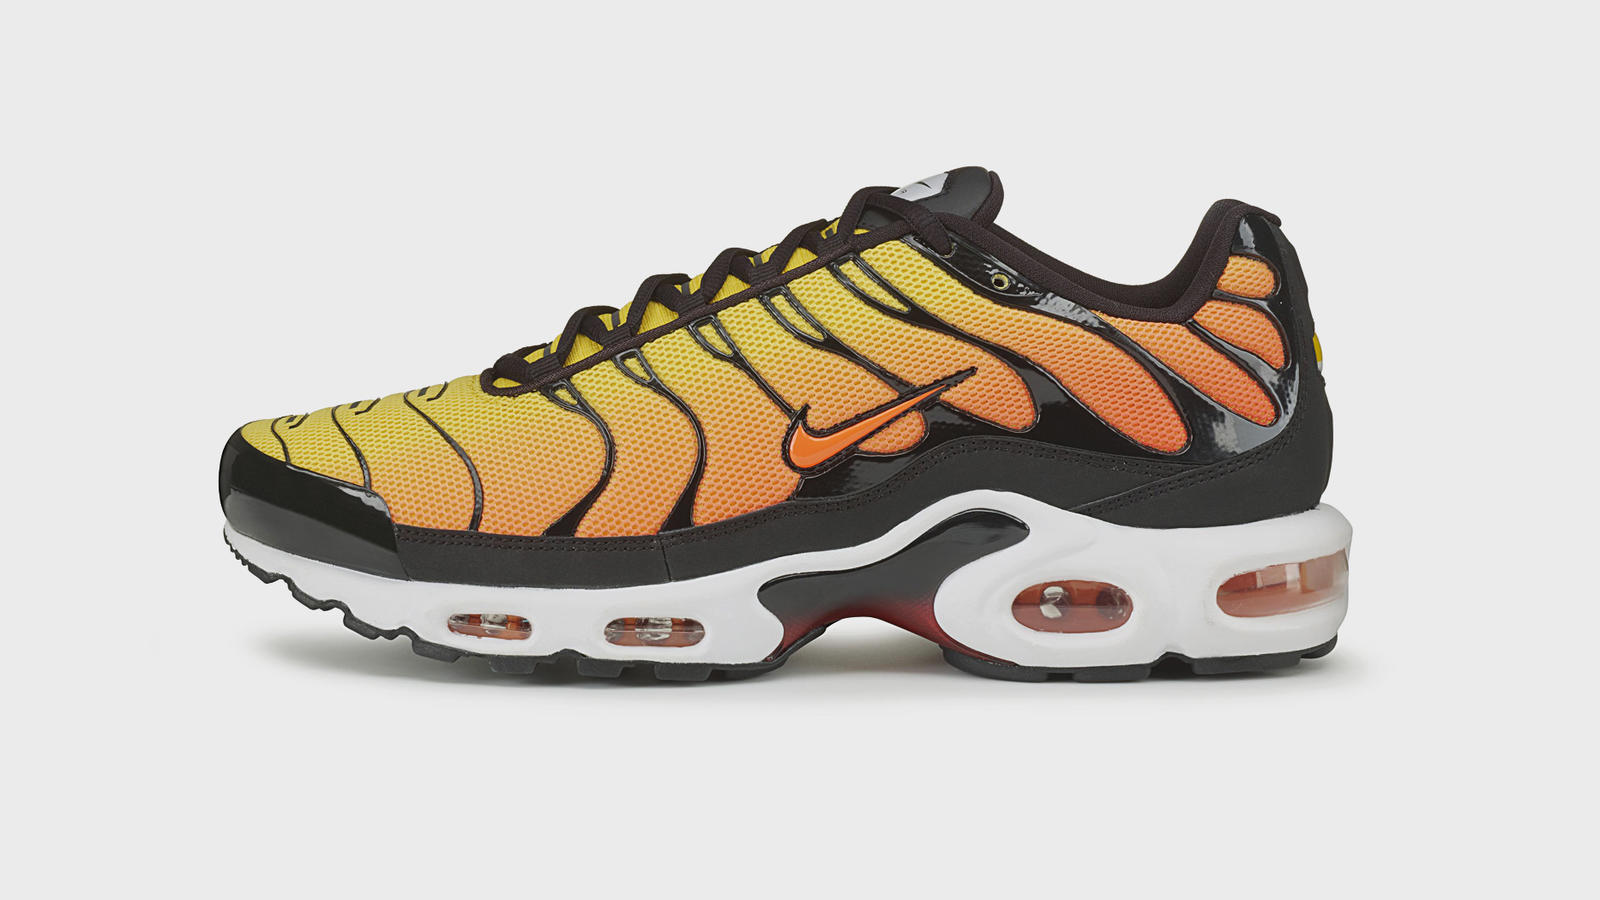 detailed look 64dbd 8d785 The Untold Story of the Nike Air Max Plus 23